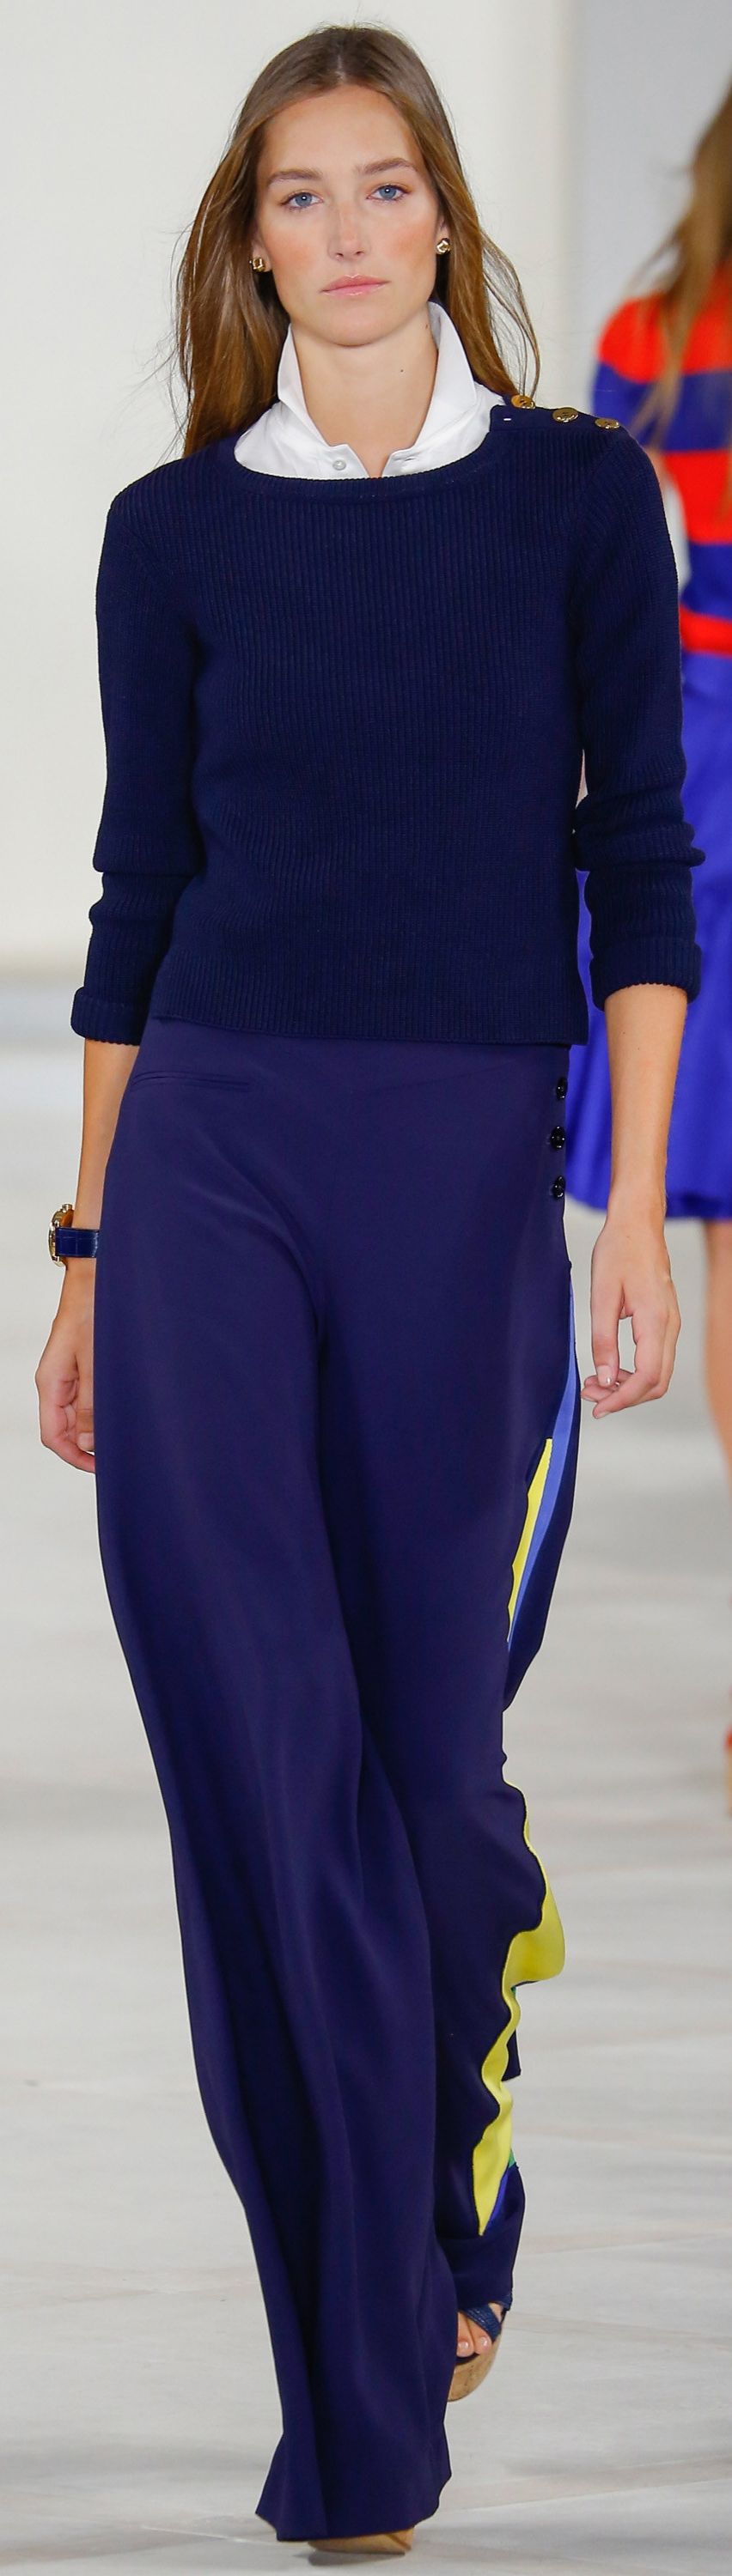 Shop Shop Runway Looks at the Official Site of Ralph Lauren. offers the world of Ralph Lauren, including clothing for men, women and children, ...